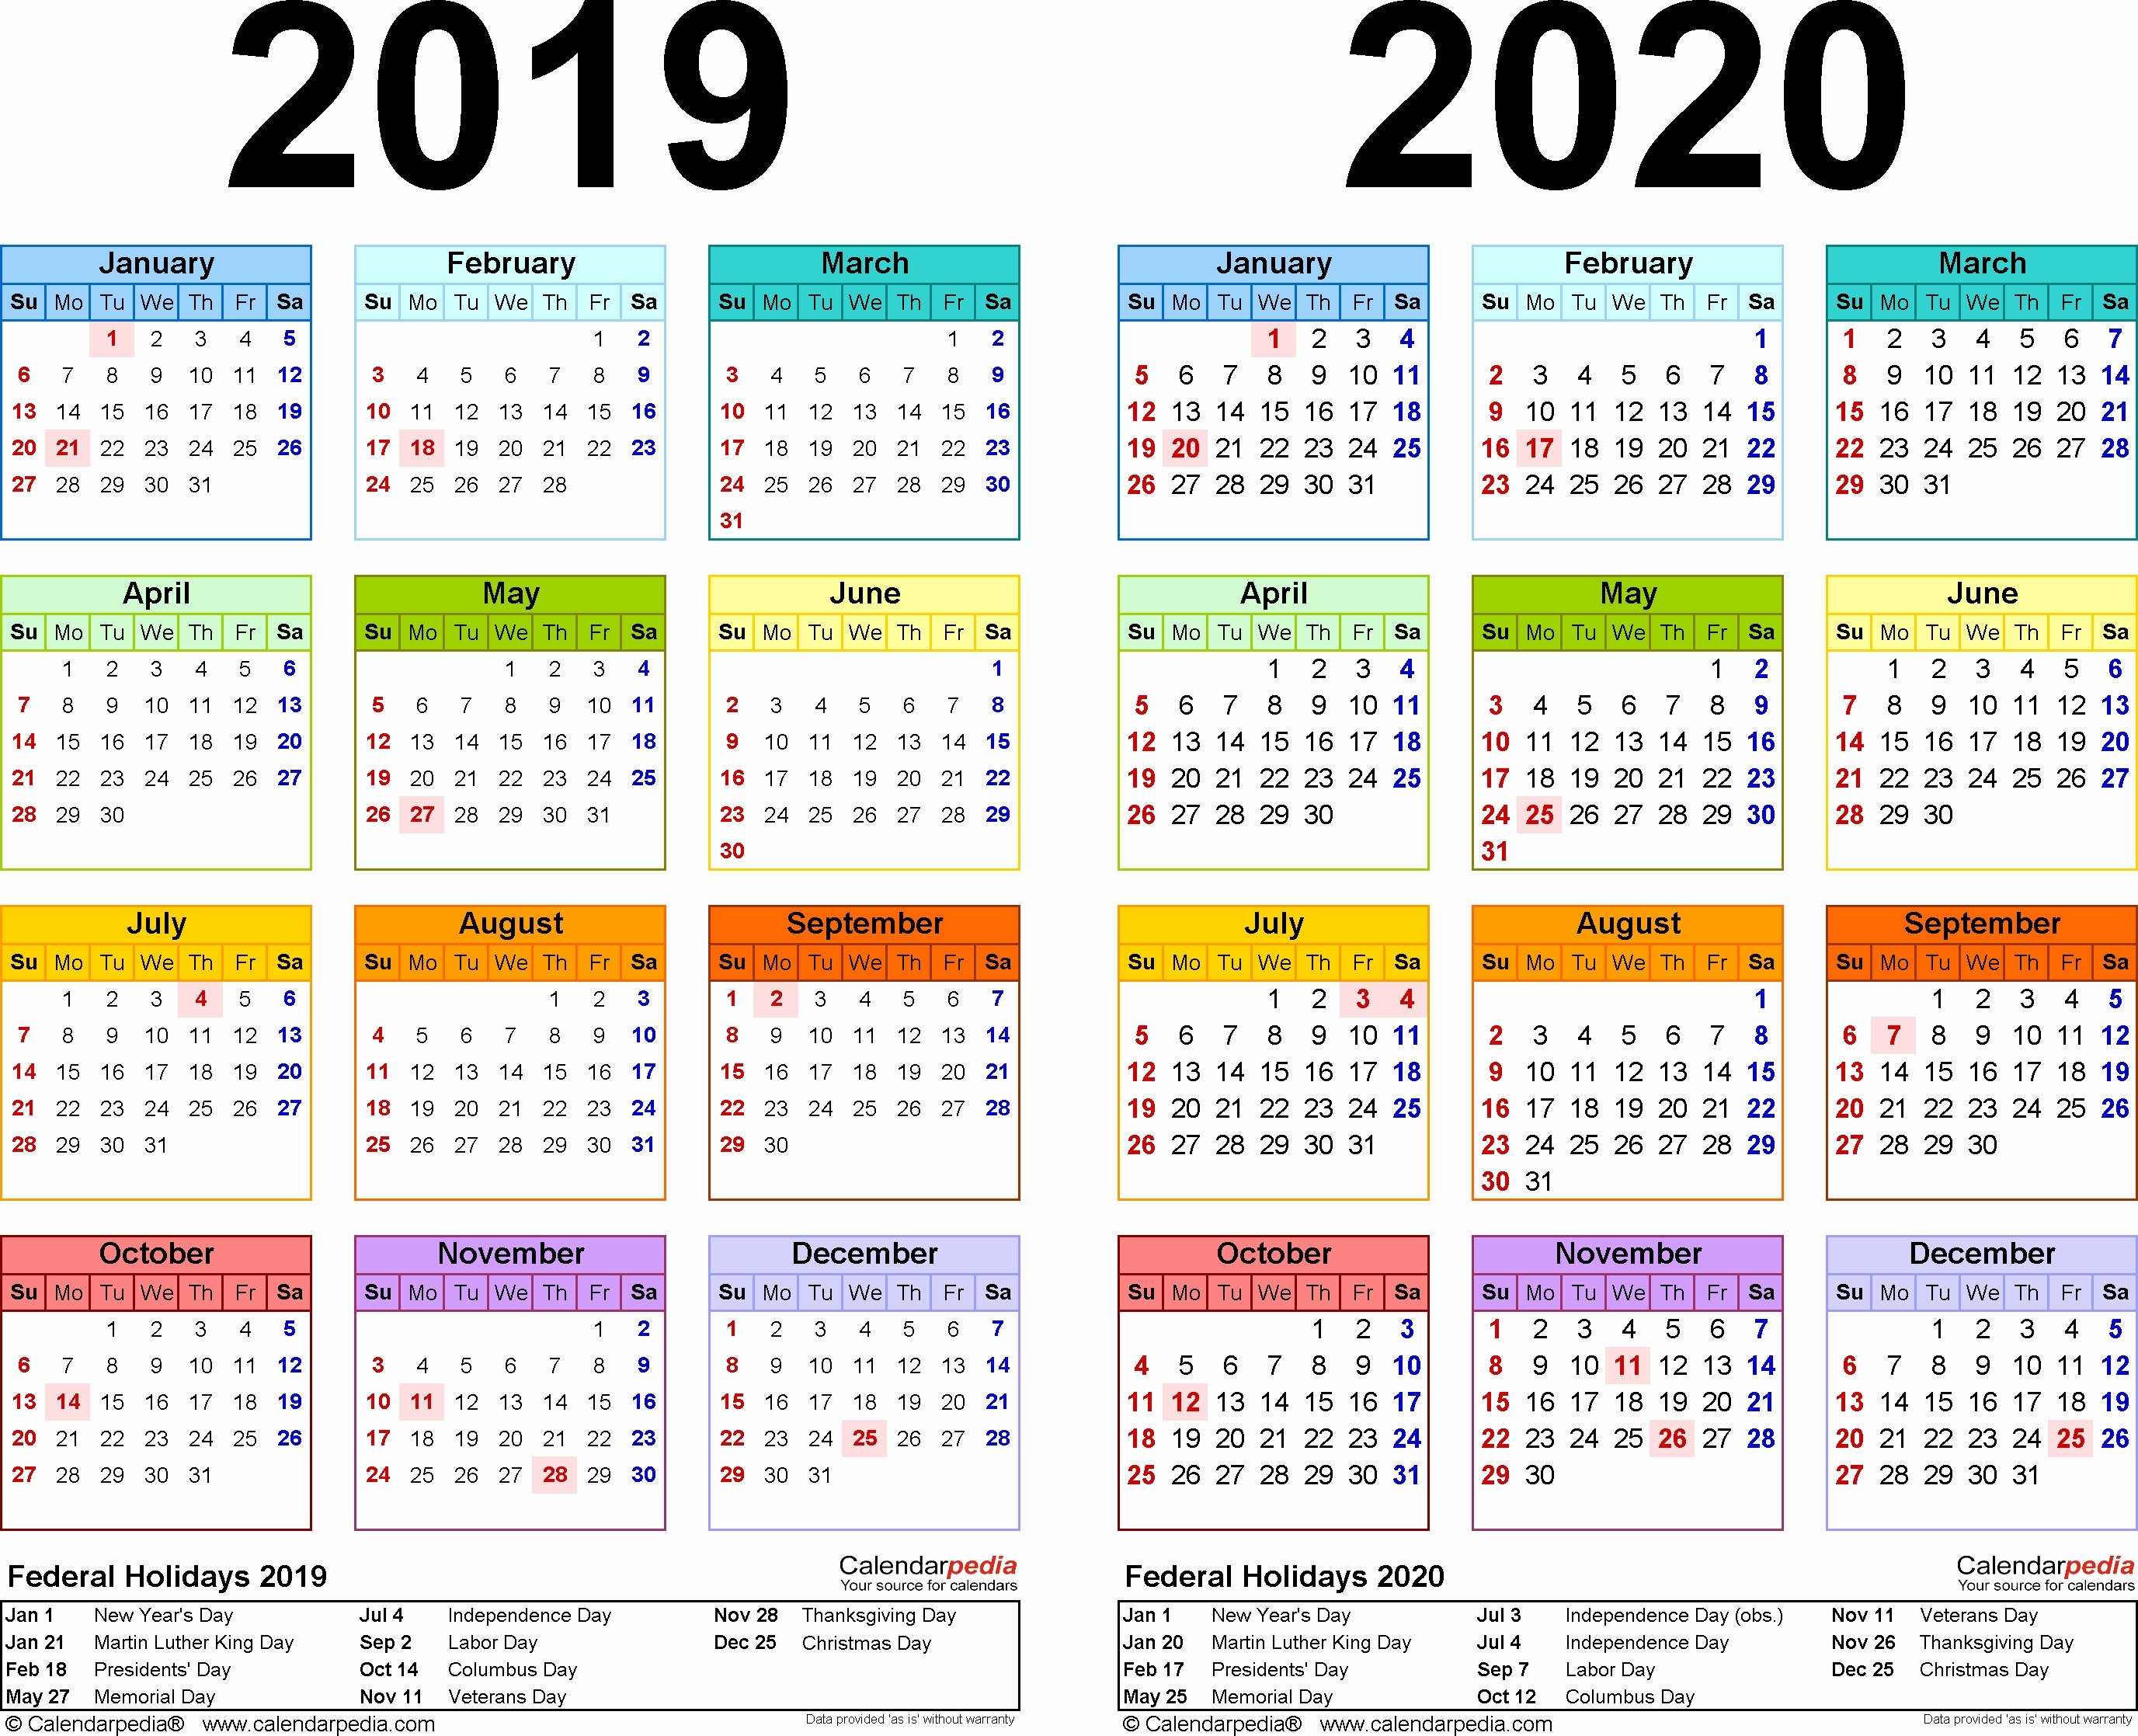 Exceptional 2020 Calendar Federal Holidays • Printable Blank Dashing 2020 Holiday Calendar Federal